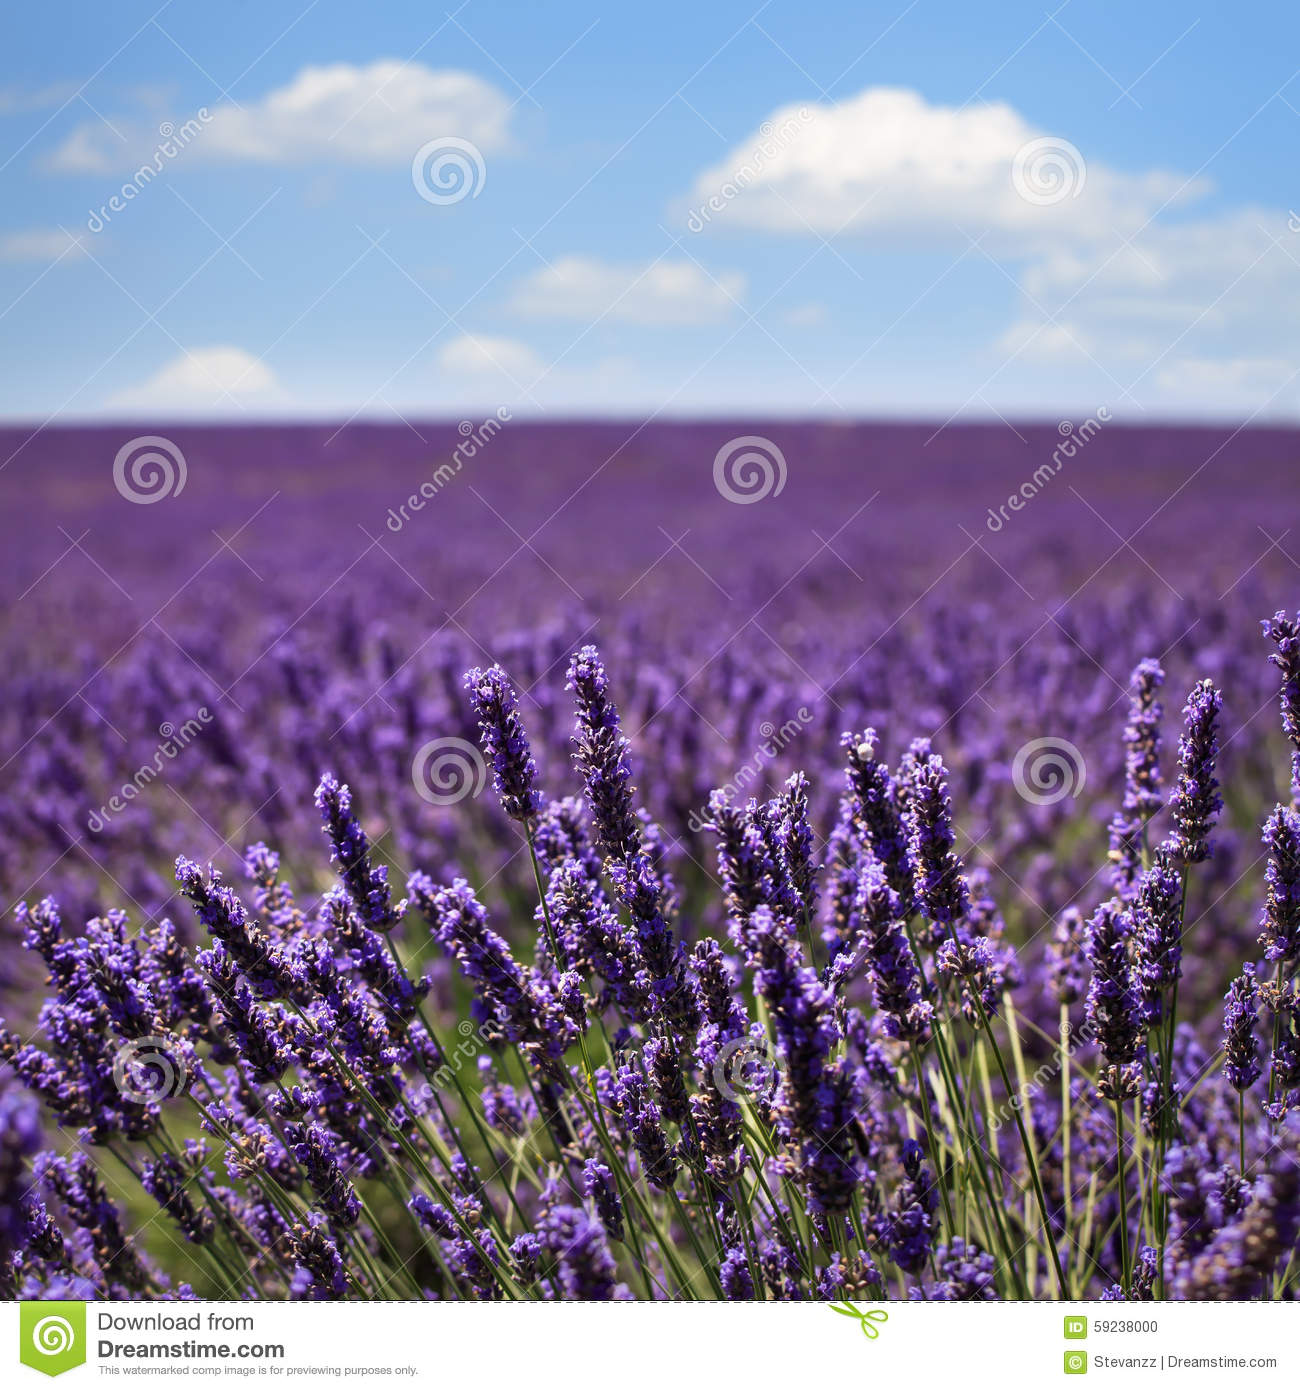 Lavender Fields France Map.Lavender Fields Provence France Map